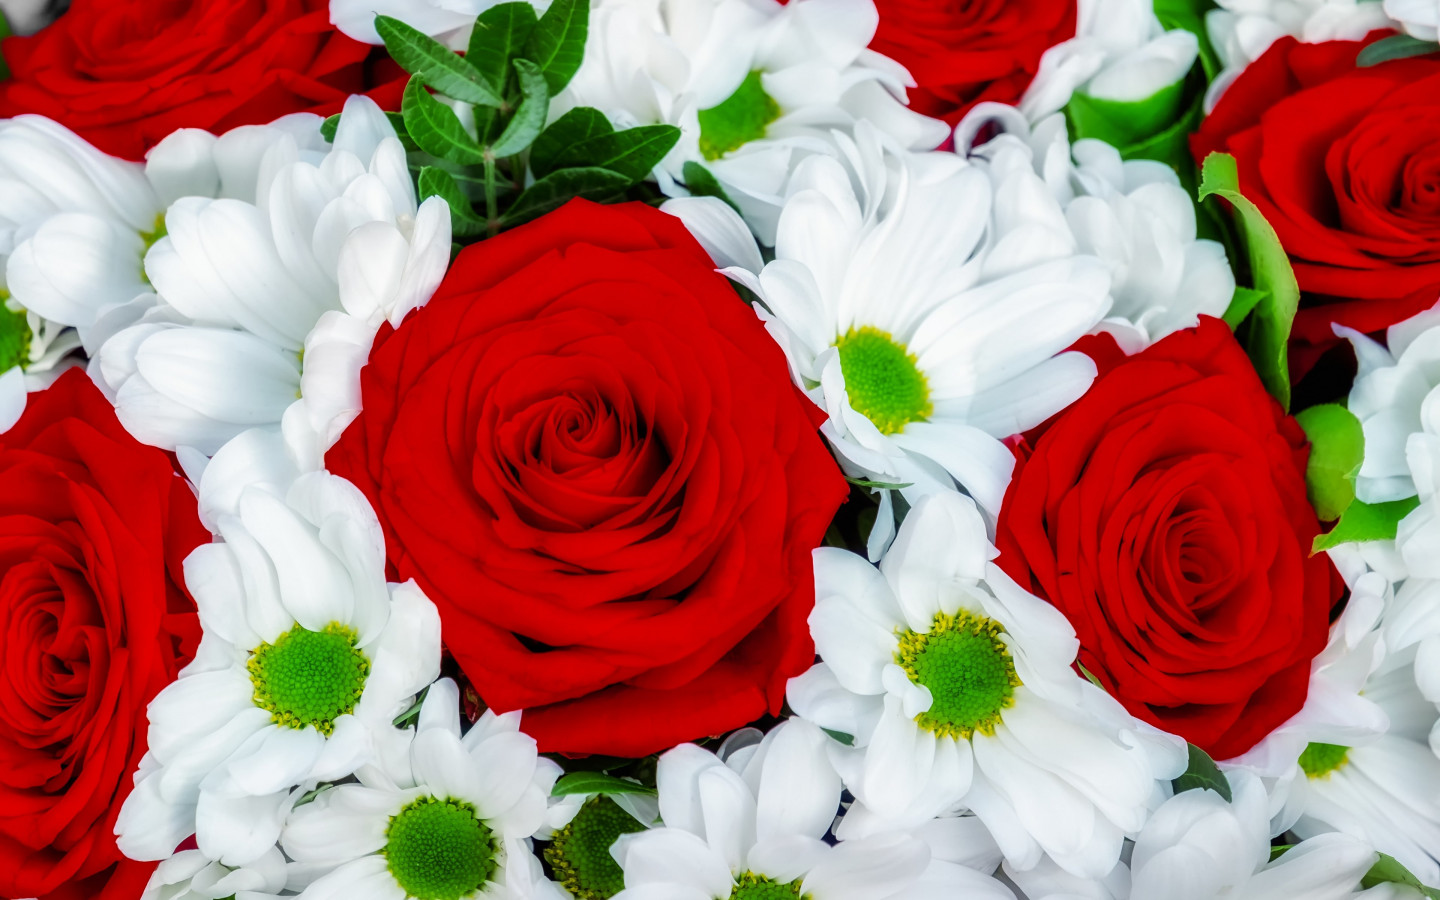 Roses and daisies bouquet wallpaper 1440x900